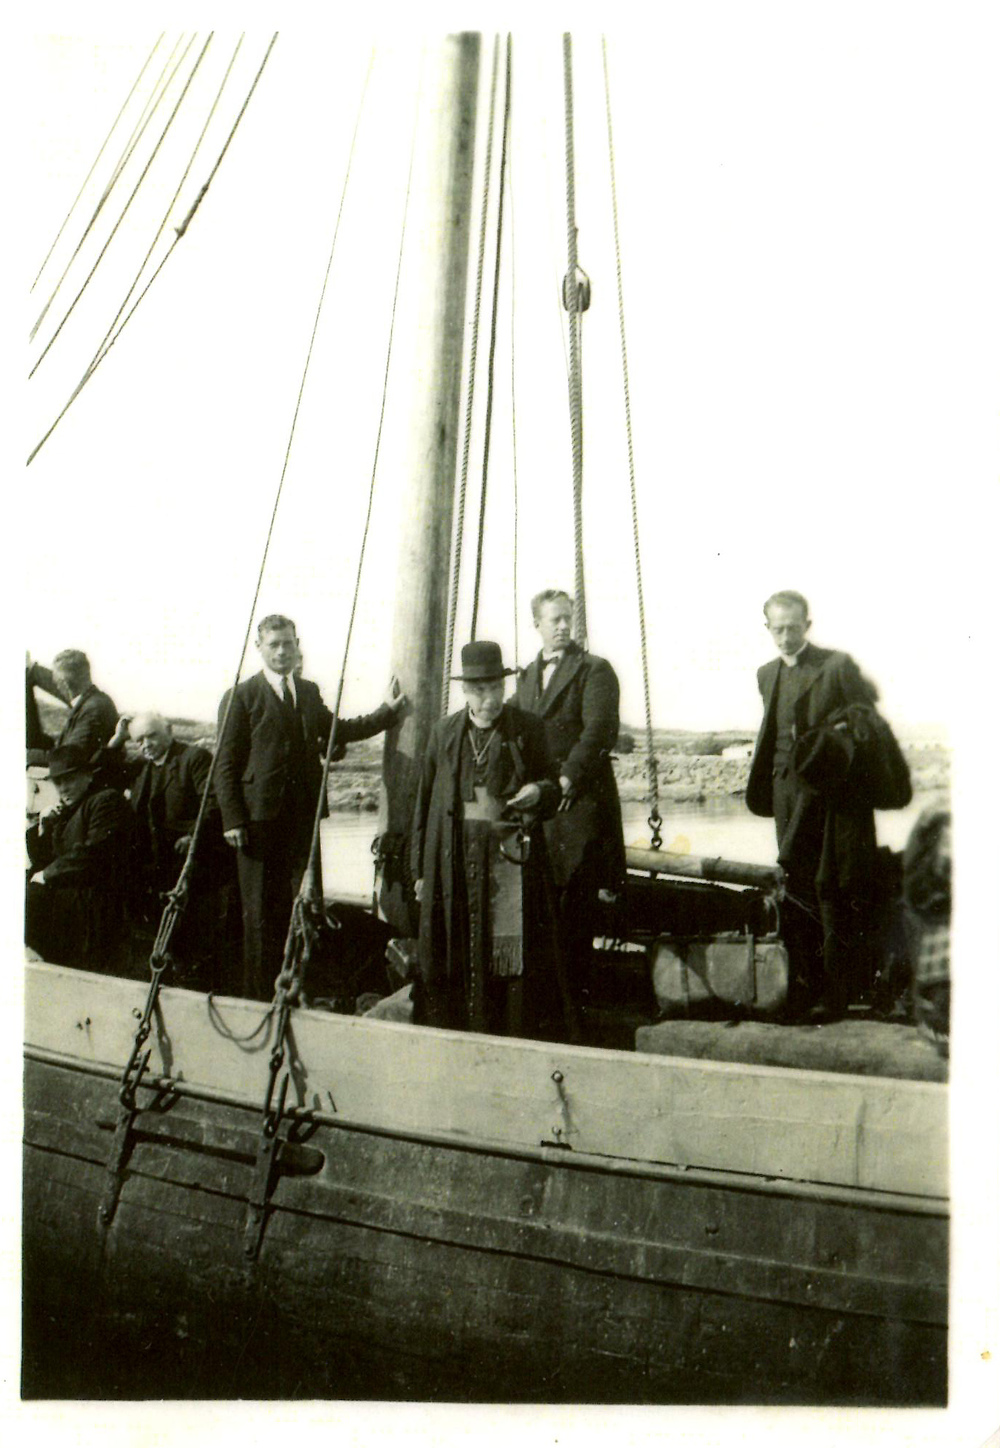 A blessing for the Galway Hooker